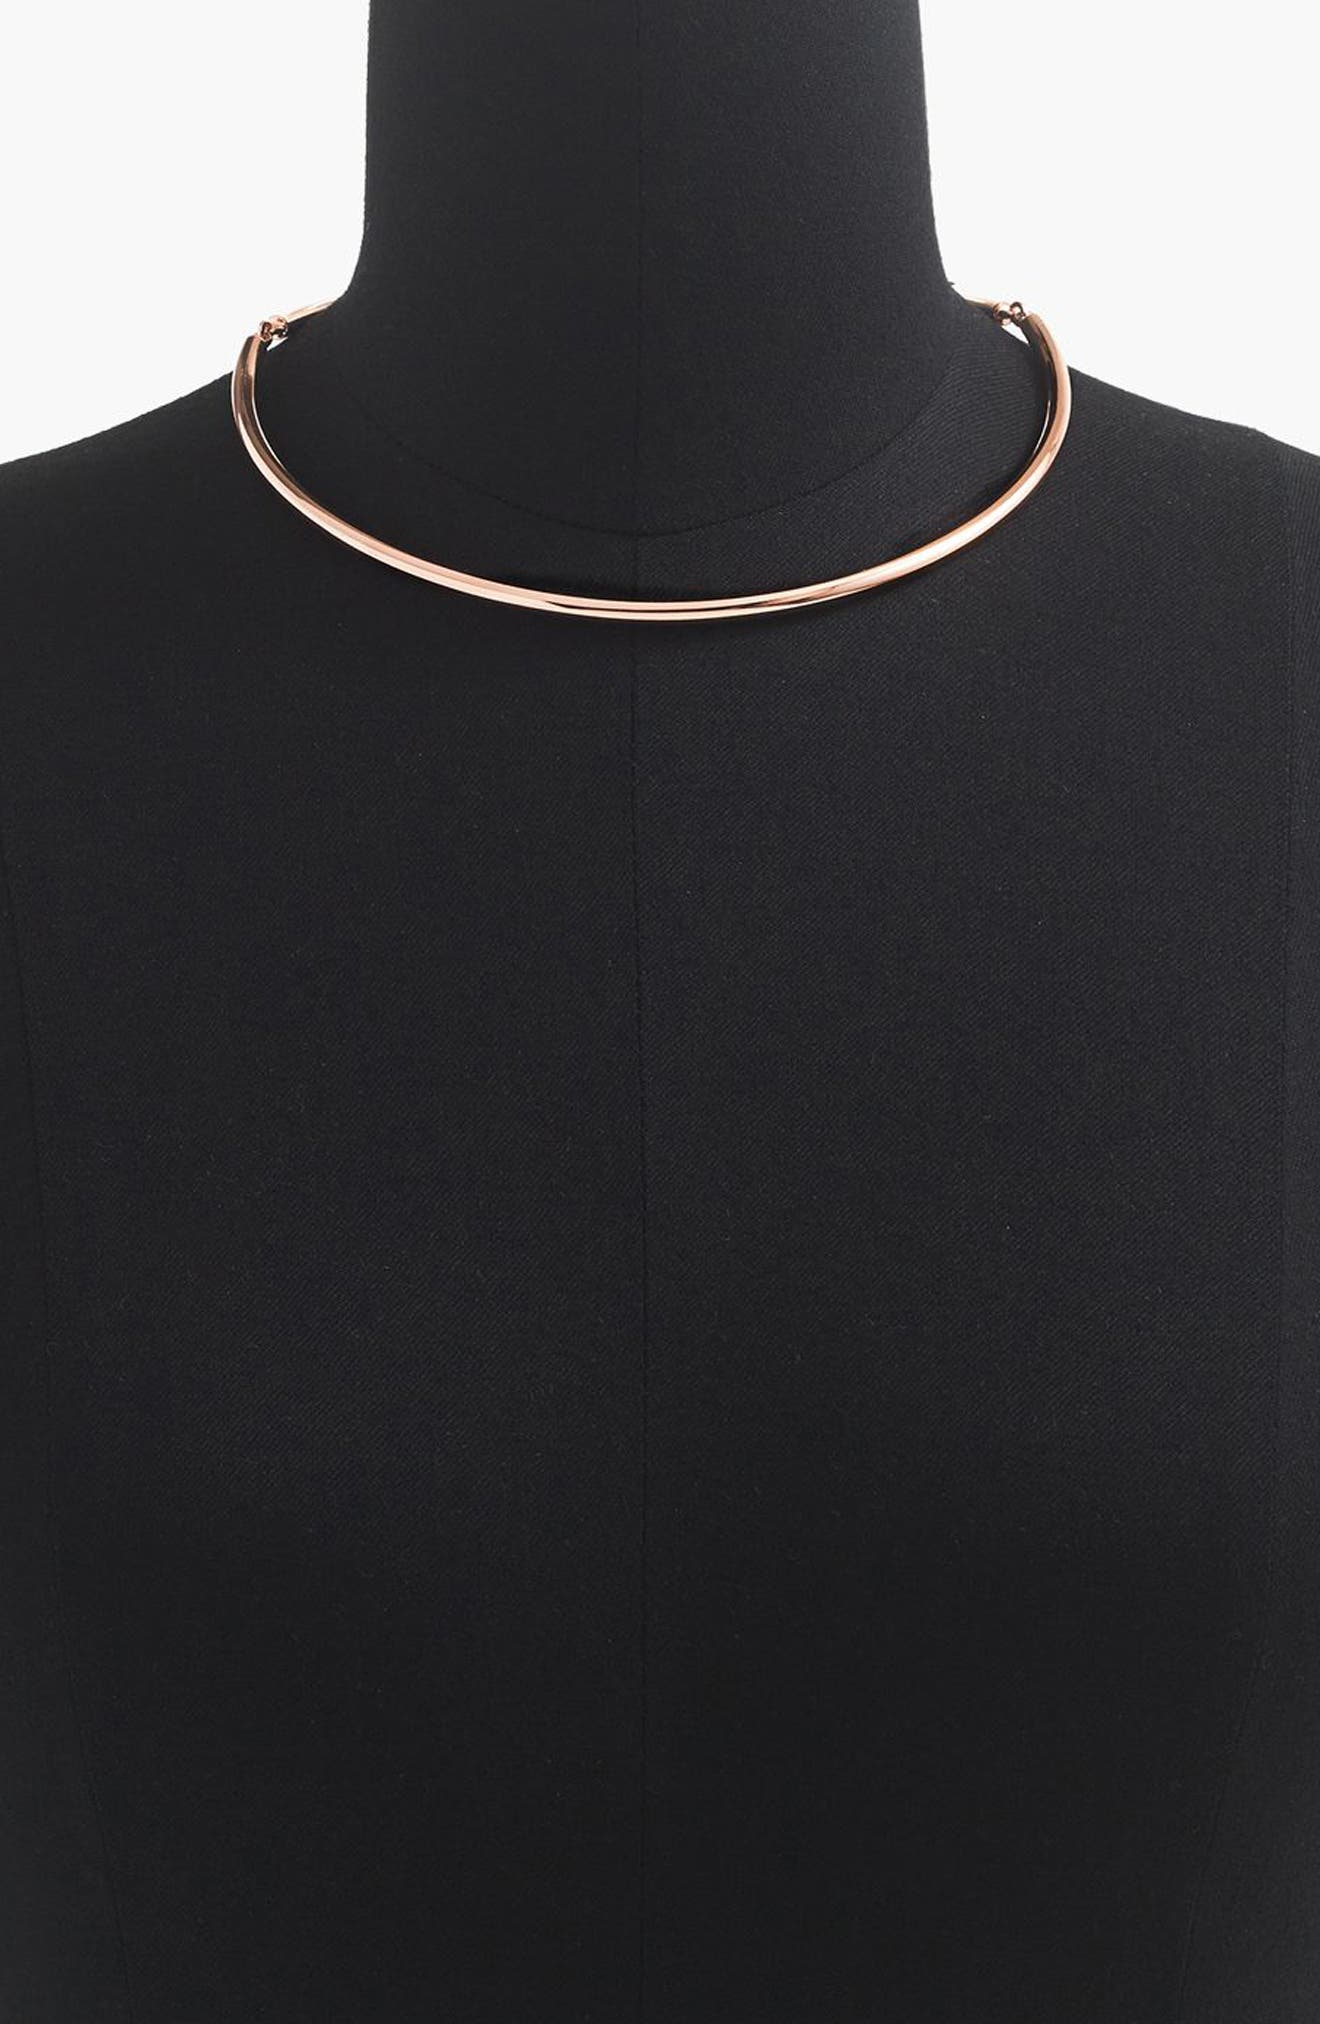 Simple Collar Necklace,                             Alternate thumbnail 5, color,